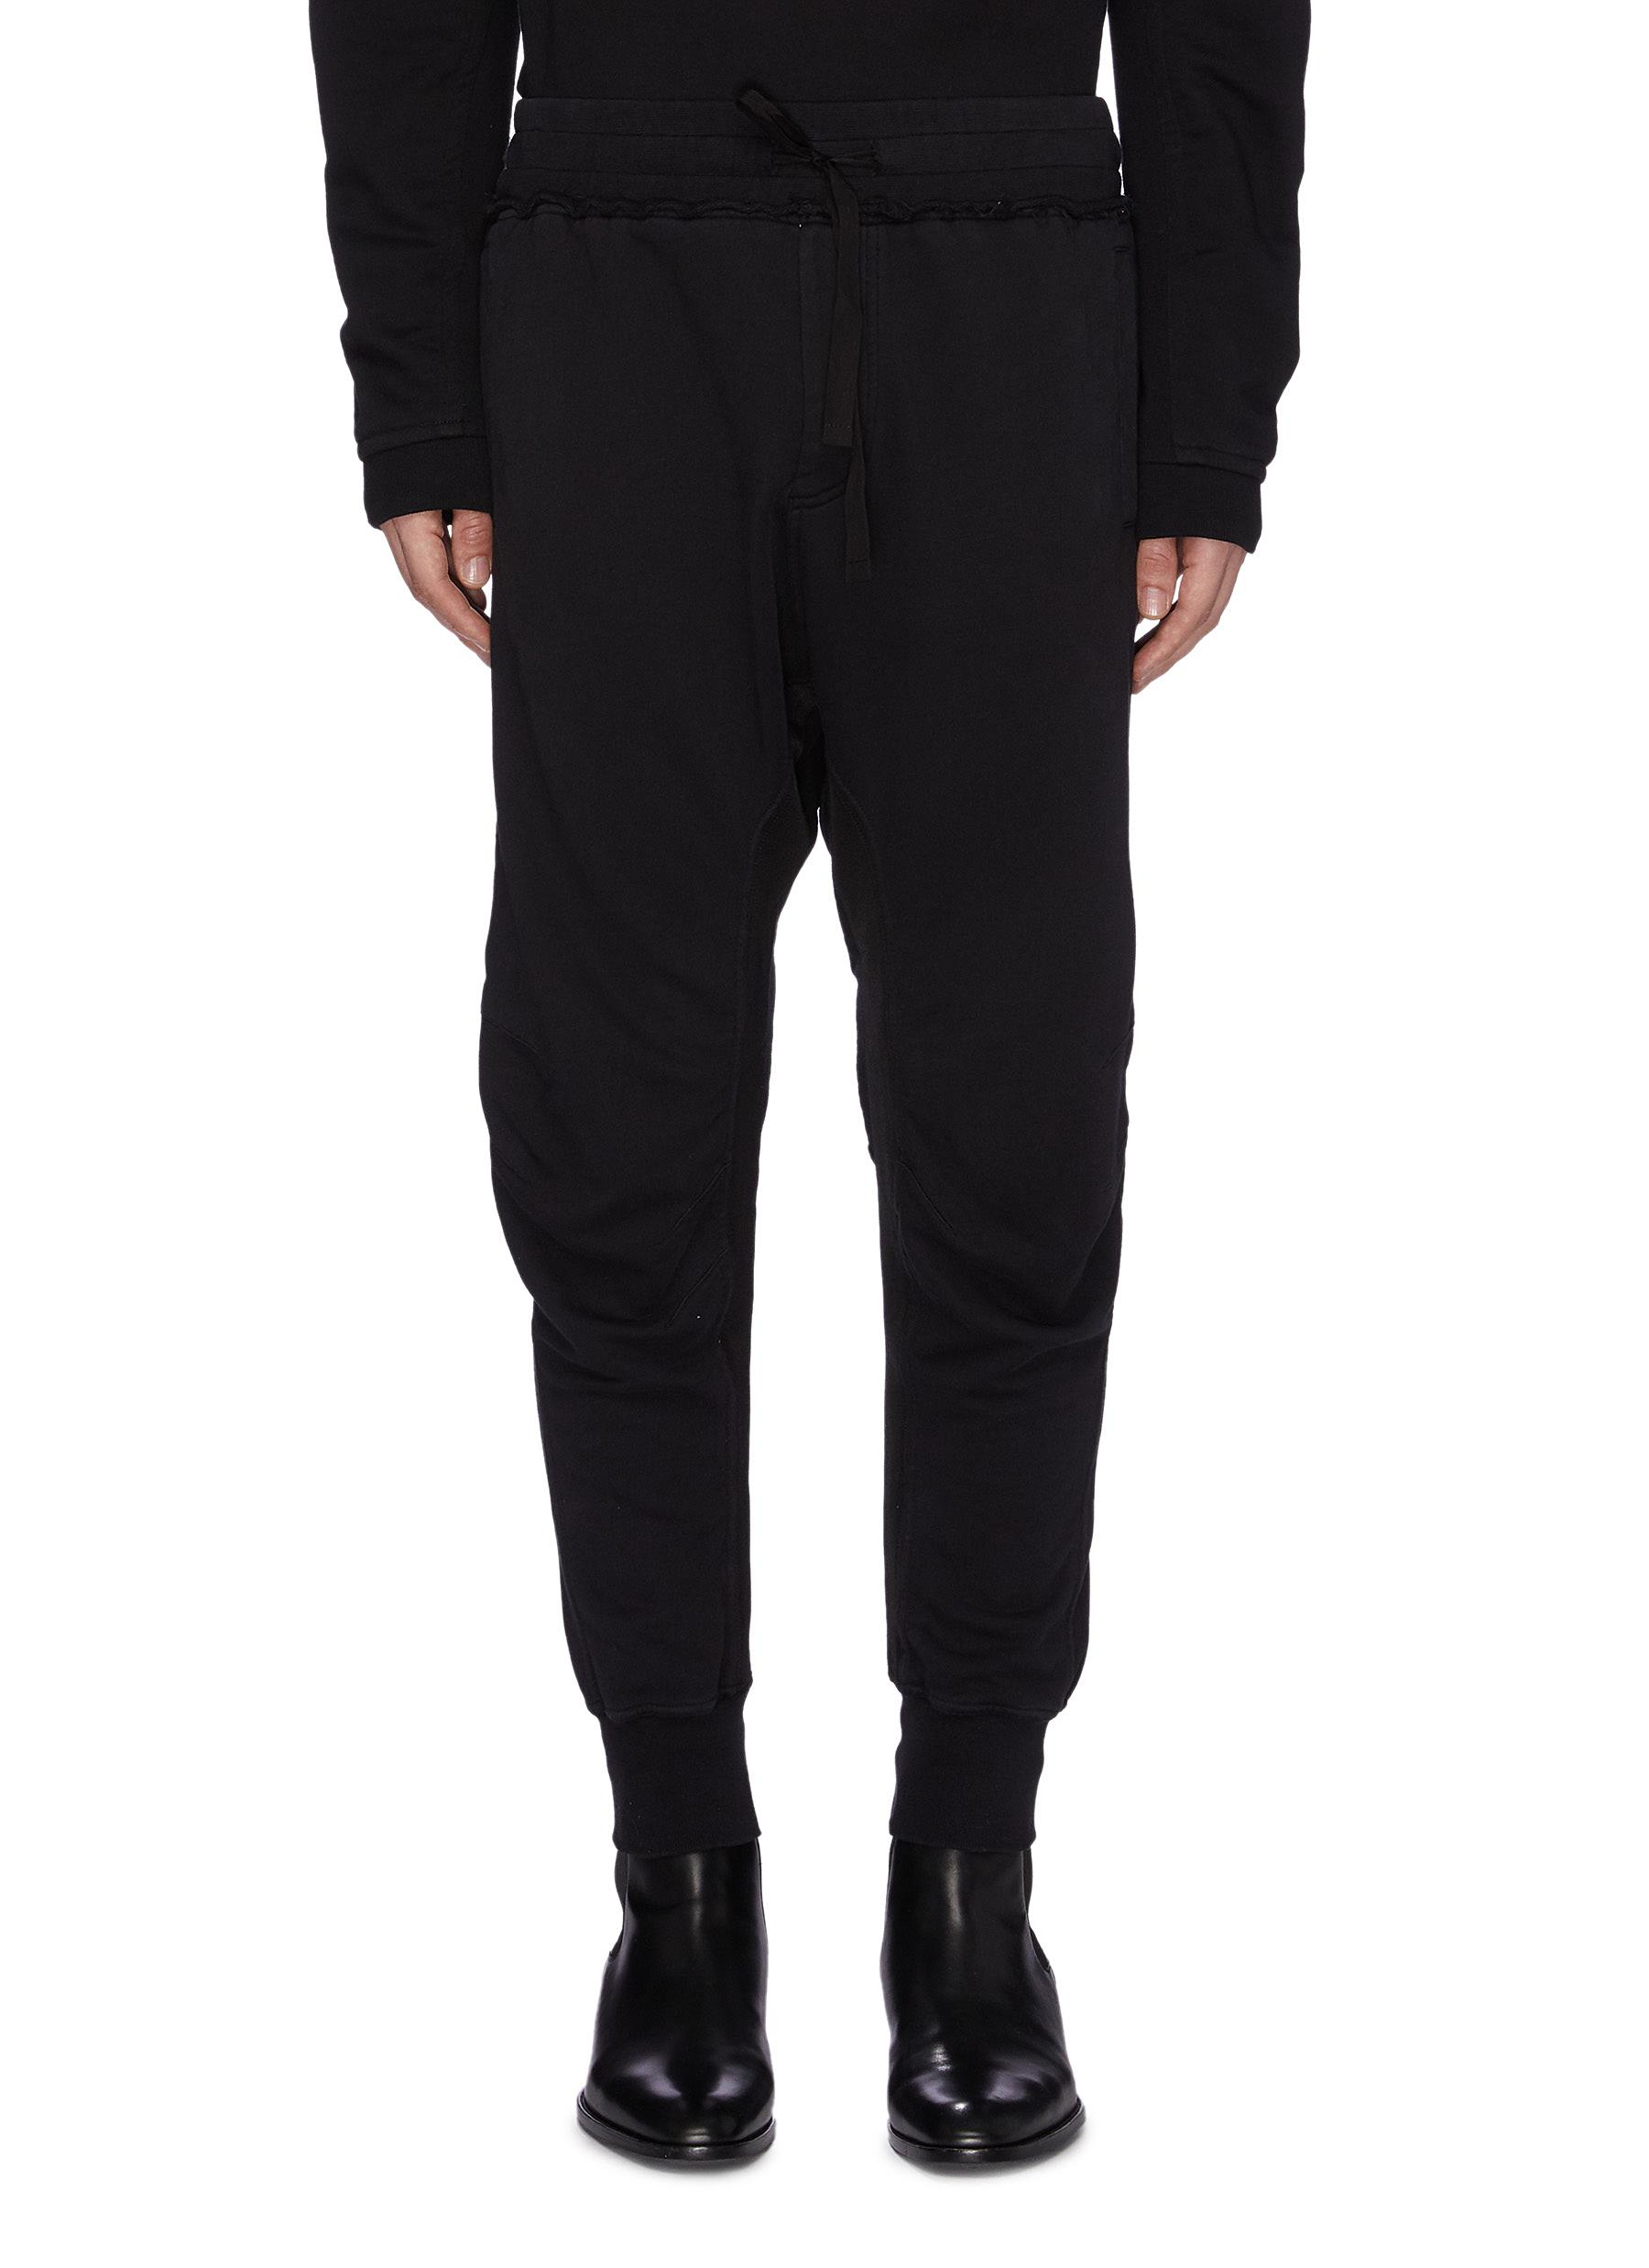 Haider Ackermann Pants 'Moonshape' ribbed panel moto jogging pants